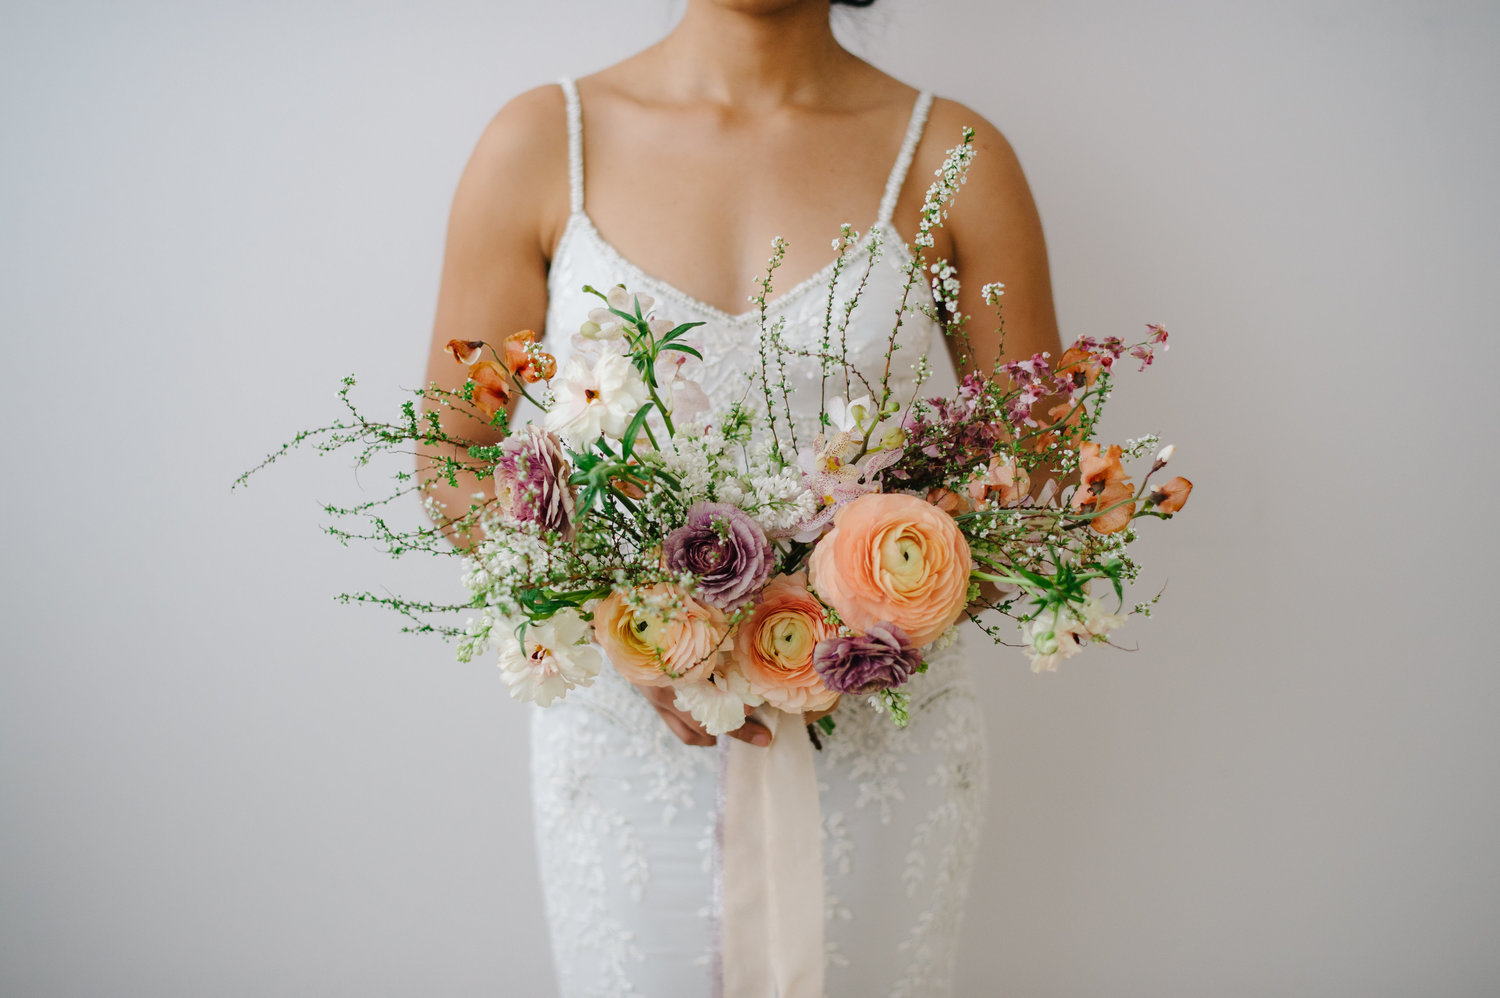 Willa Rose Floral  is a Detroit based flower farm and floral design company run by Julia Griffin. She will be offering beautiful handmade dried flower wreaths, pressed flower frames and bouquets.